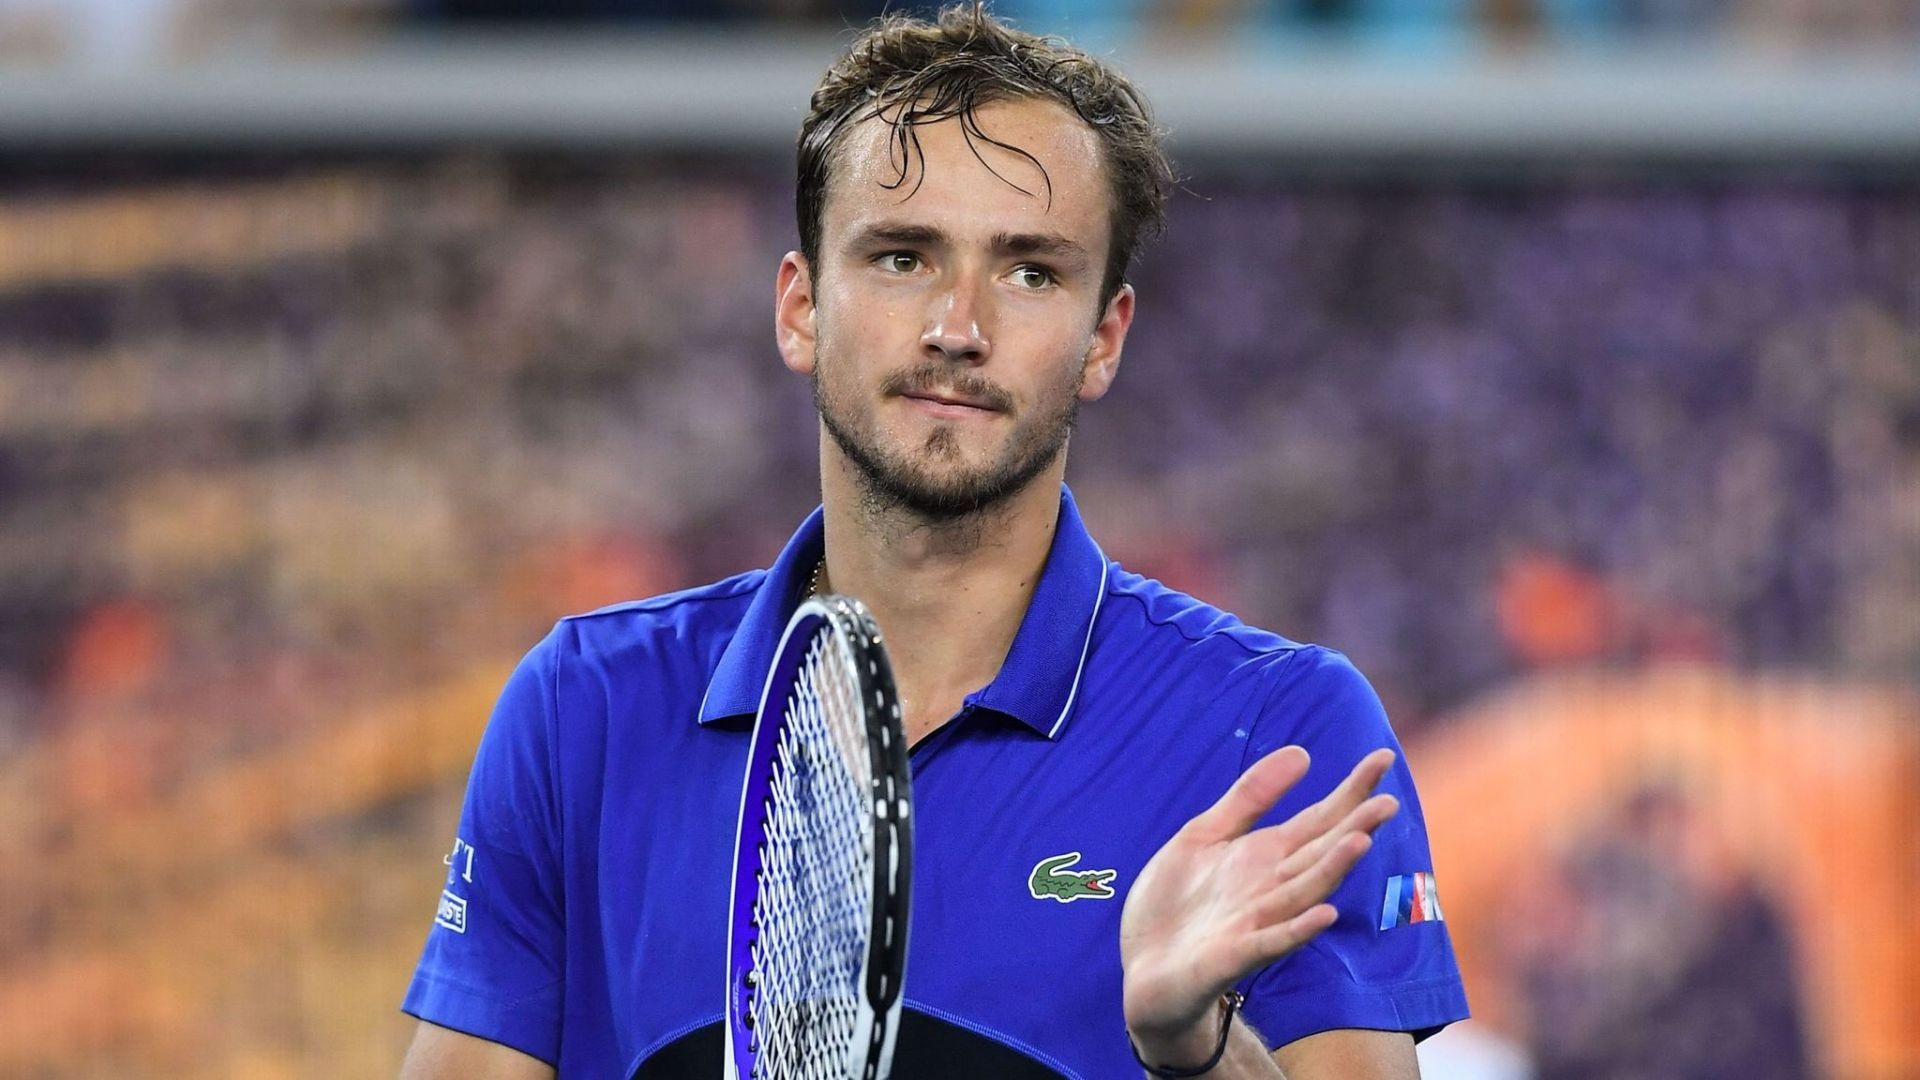 Russian tennis icon Daniil Medvedev confident over the COVID-19 measures at US Open - THE SPORTS ROOM